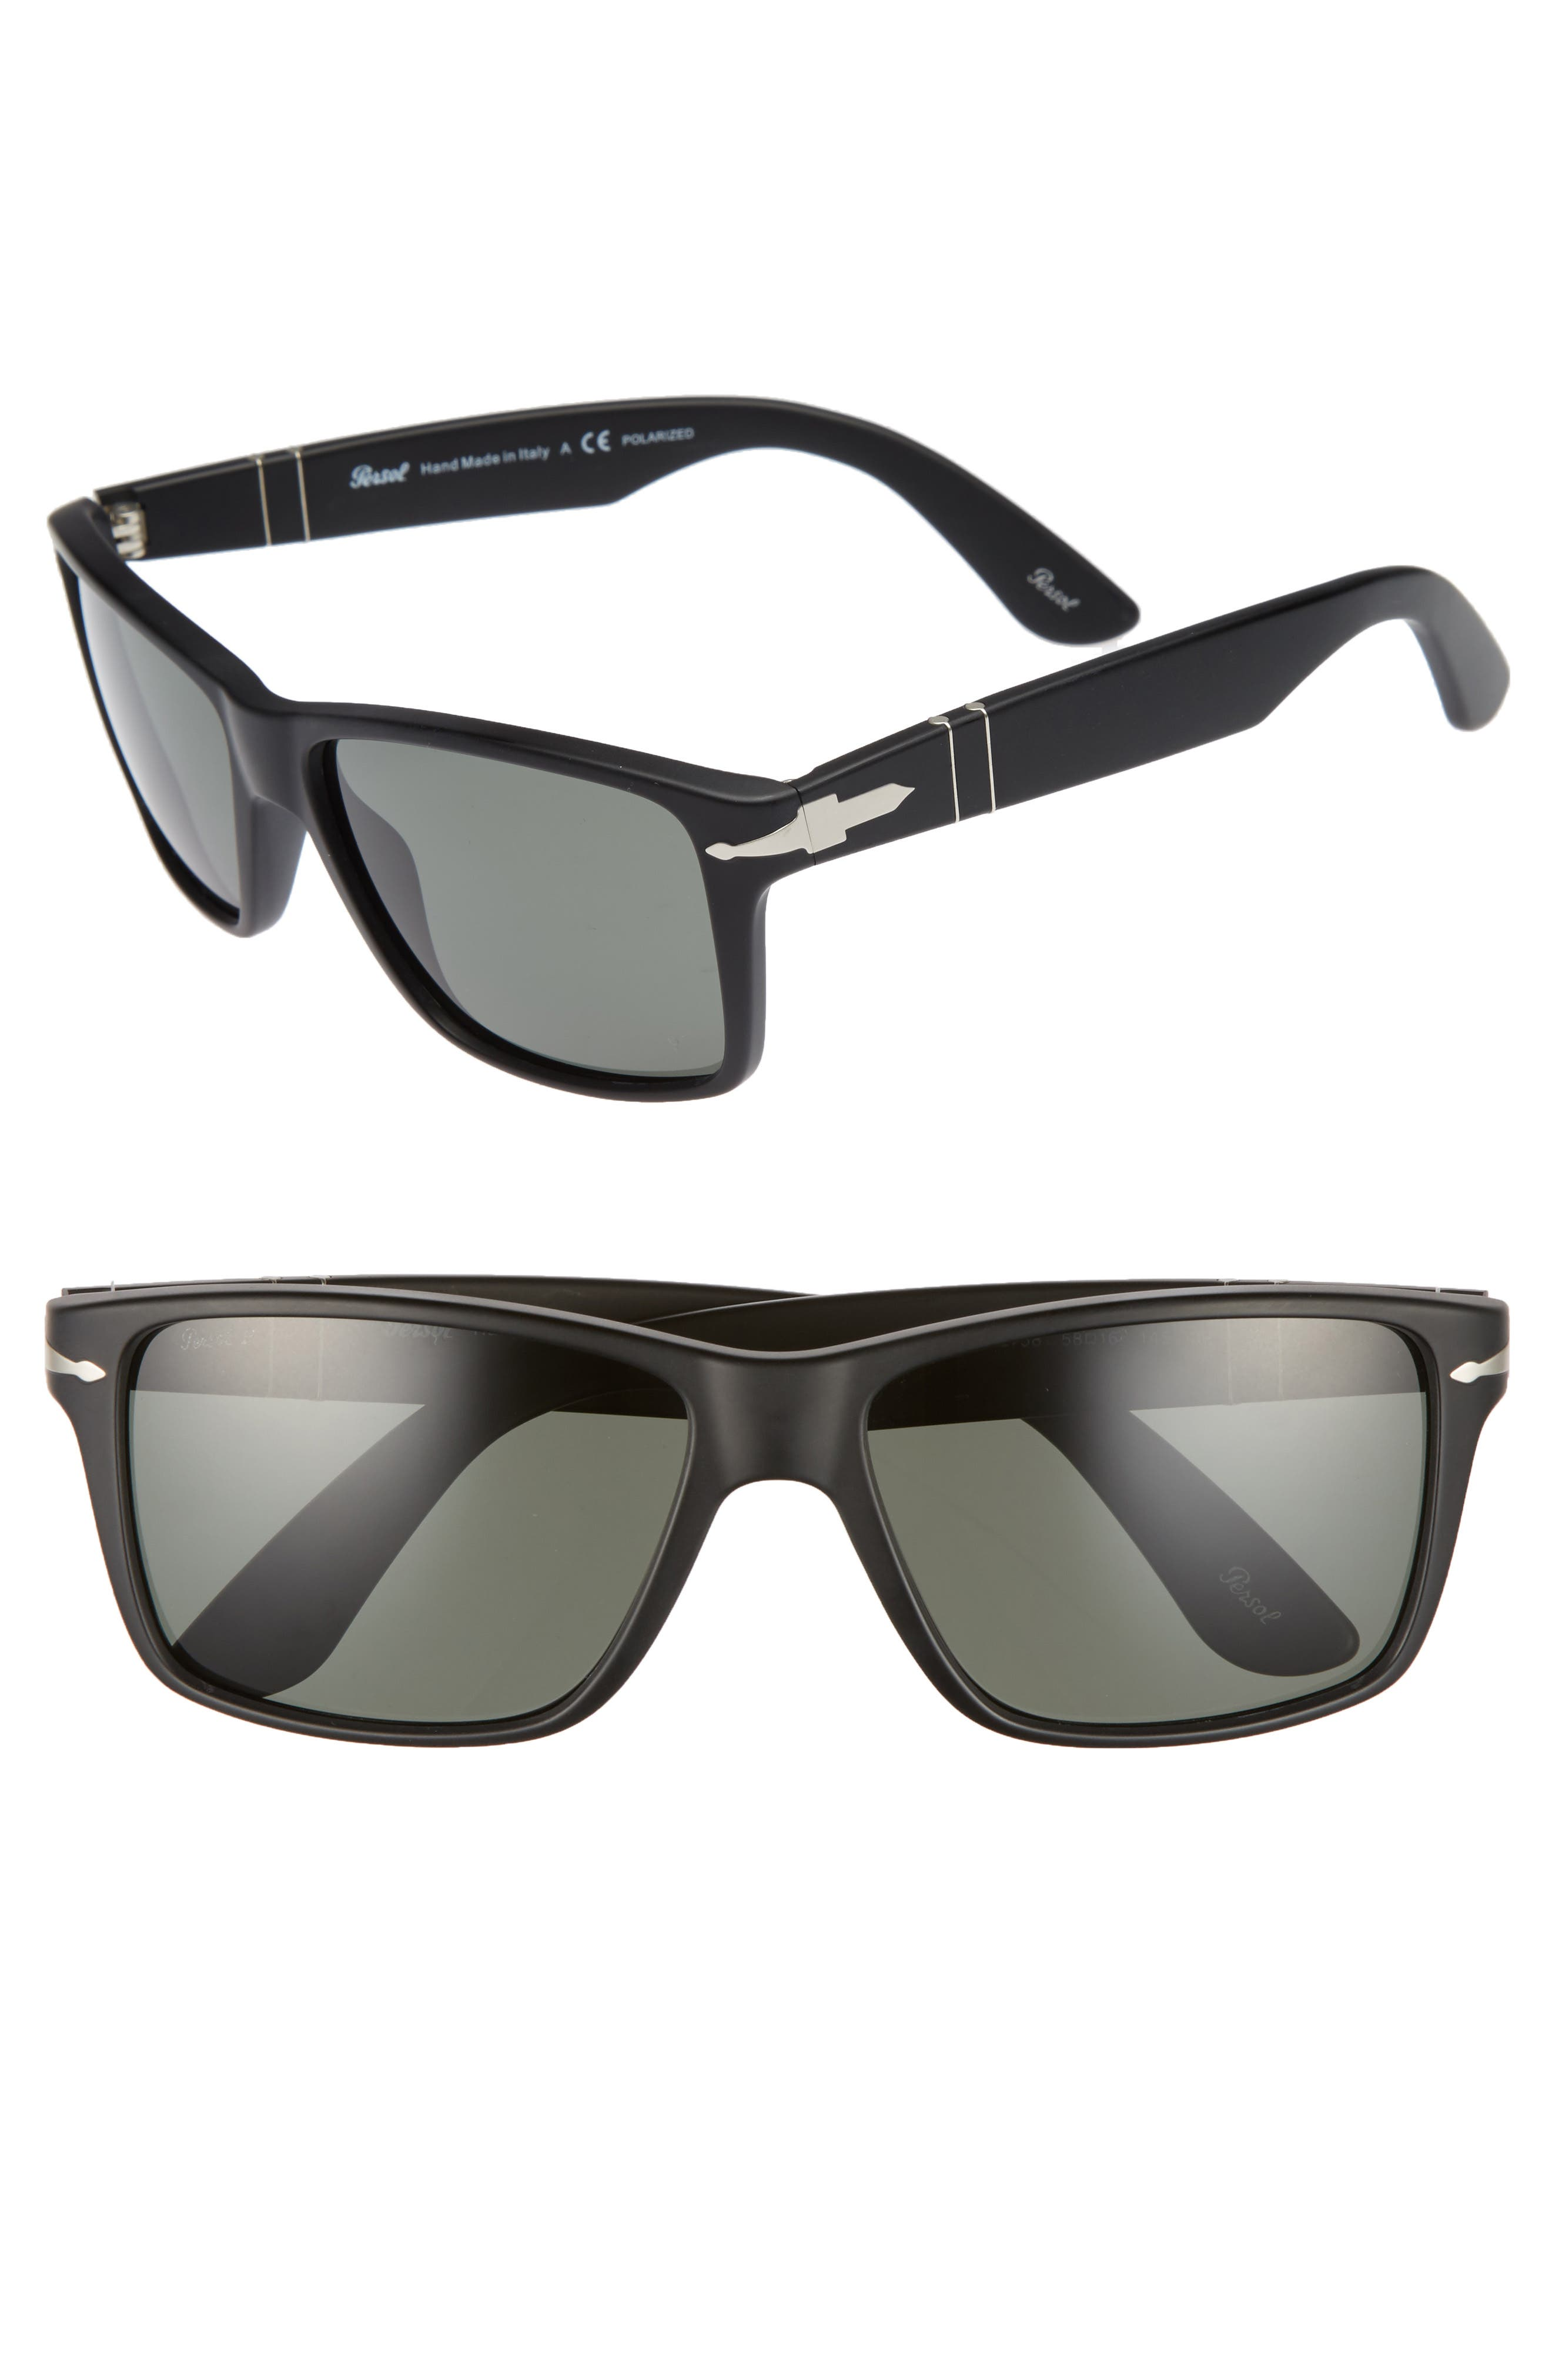 Alternate Image 1 Selected - Persol 58mm Polarized Sunglasses